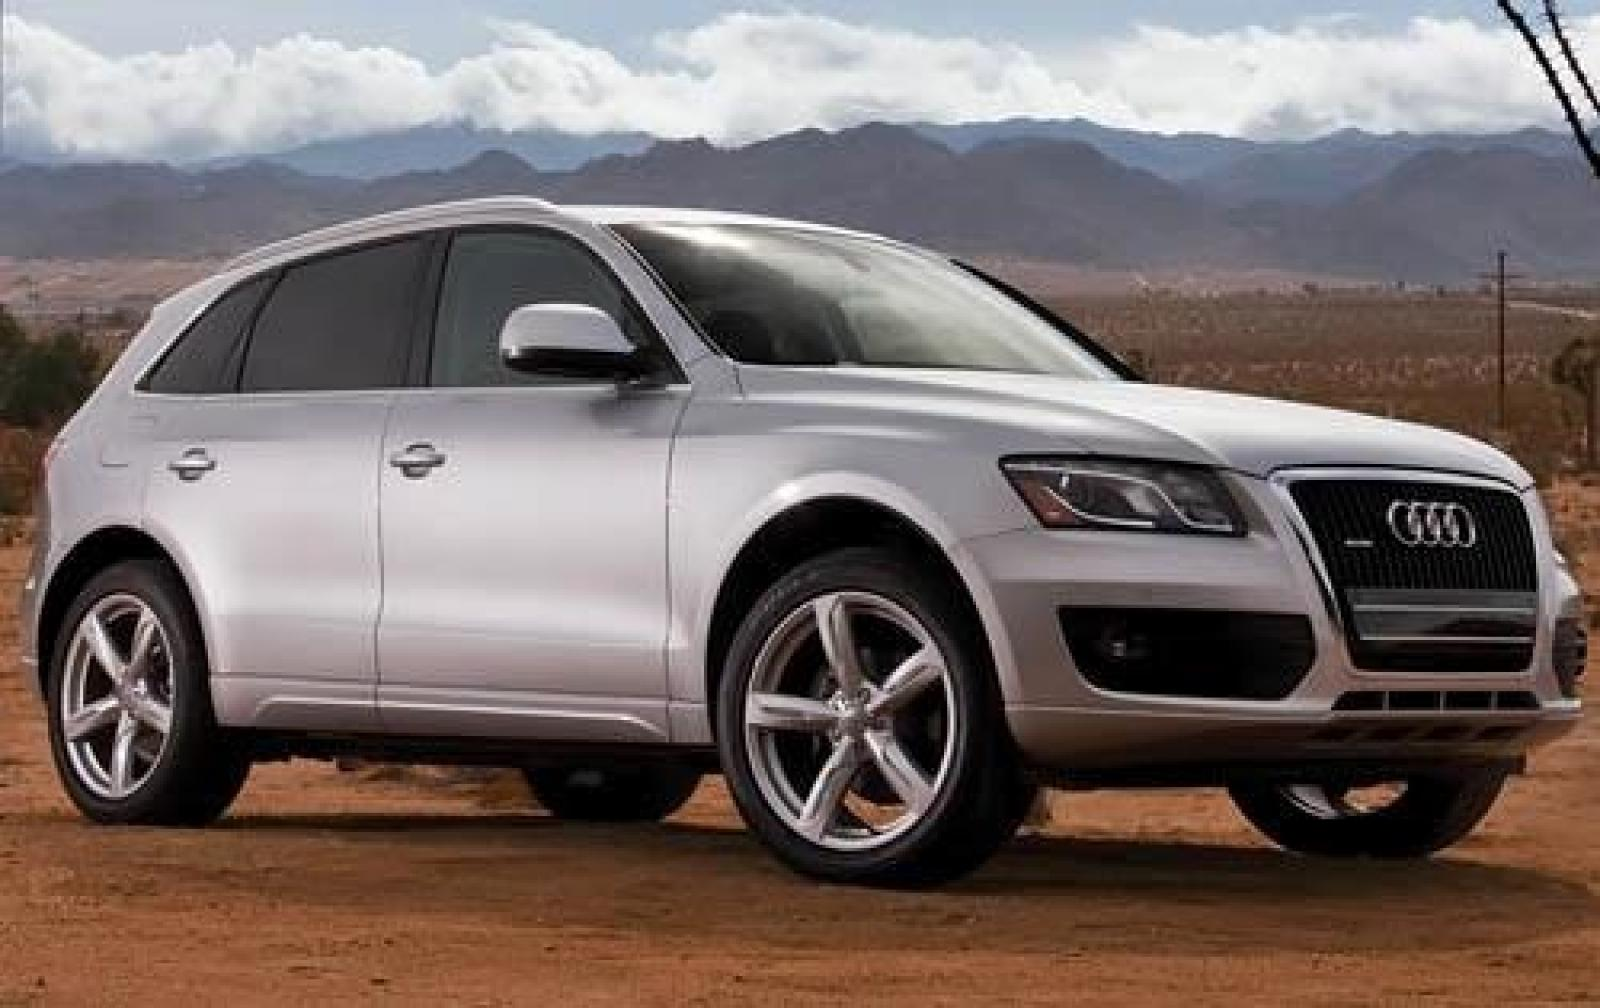 2012 audi q5 information and photos zombiedrive. Black Bedroom Furniture Sets. Home Design Ideas